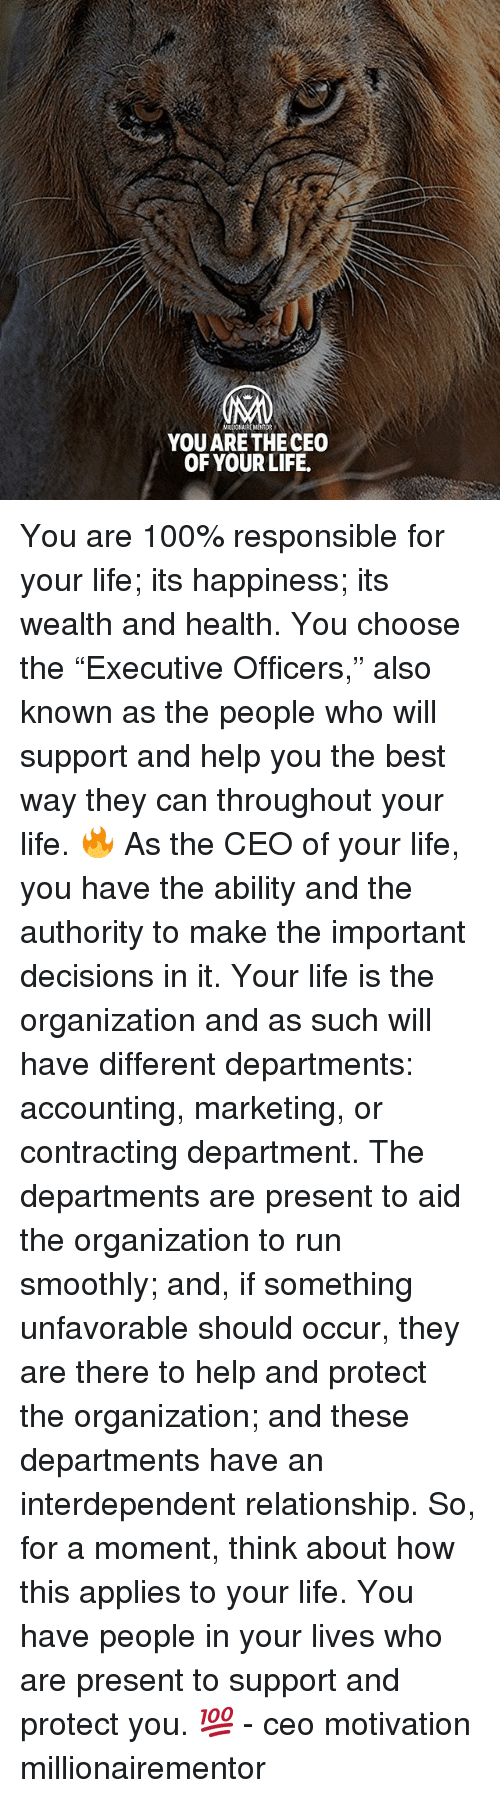 """Anaconda, Life, and Memes: YOU ARE THE CEO  OF YOUR LIFE. You are 100% responsible for your life; its happiness; its wealth and health. You choose the """"Executive Officers,"""" also known as the people who will support and help you the best way they can throughout your life. 🔥 As the CEO of your life, you have the ability and the authority to make the important decisions in it. Your life is the organization and as such will have different departments: accounting, marketing, or contracting department. The departments are present to aid the organization to run smoothly; and, if something unfavorable should occur, they are there to help and protect the organization; and these departments have an interdependent relationship. So, for a moment, think about how this applies to your life. You have people in your lives who are present to support and protect you. 💯 - ceo motivation millionairementor"""